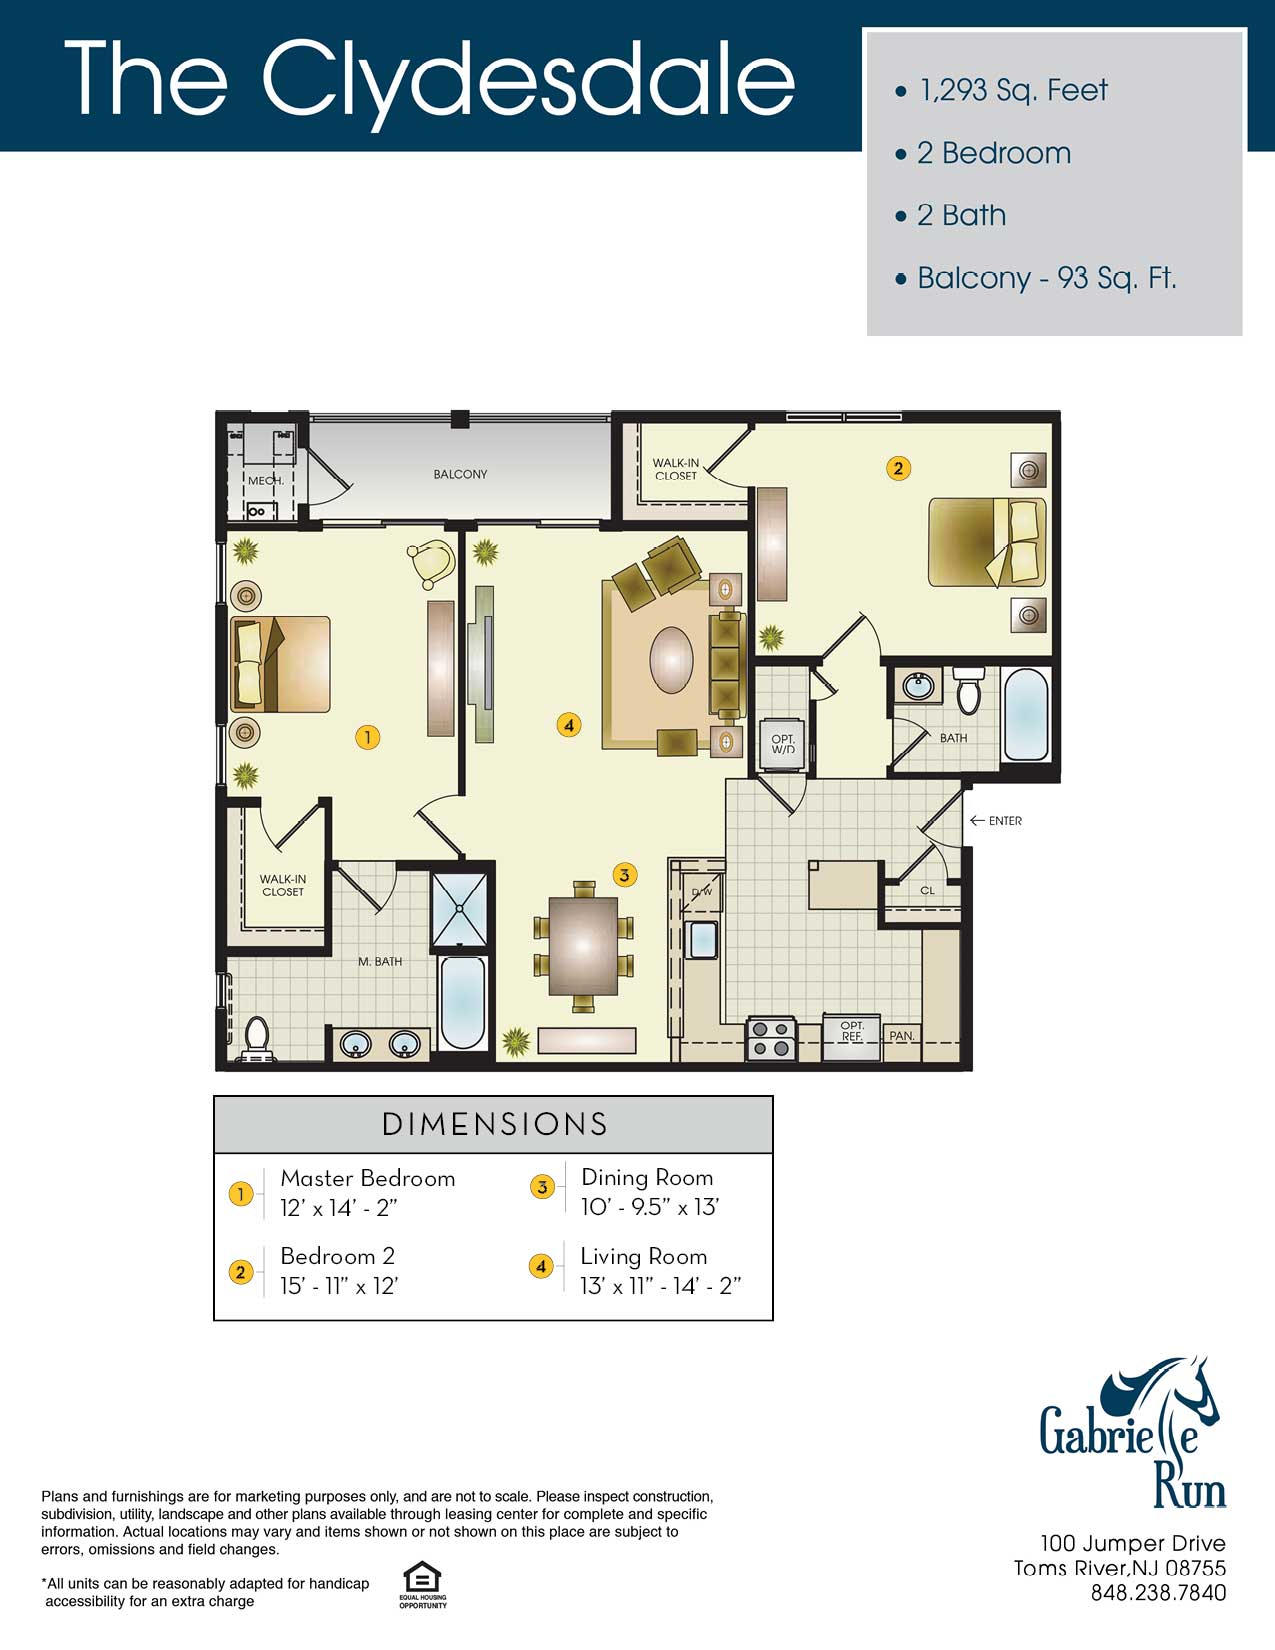 The Clydesdale Floor Plan